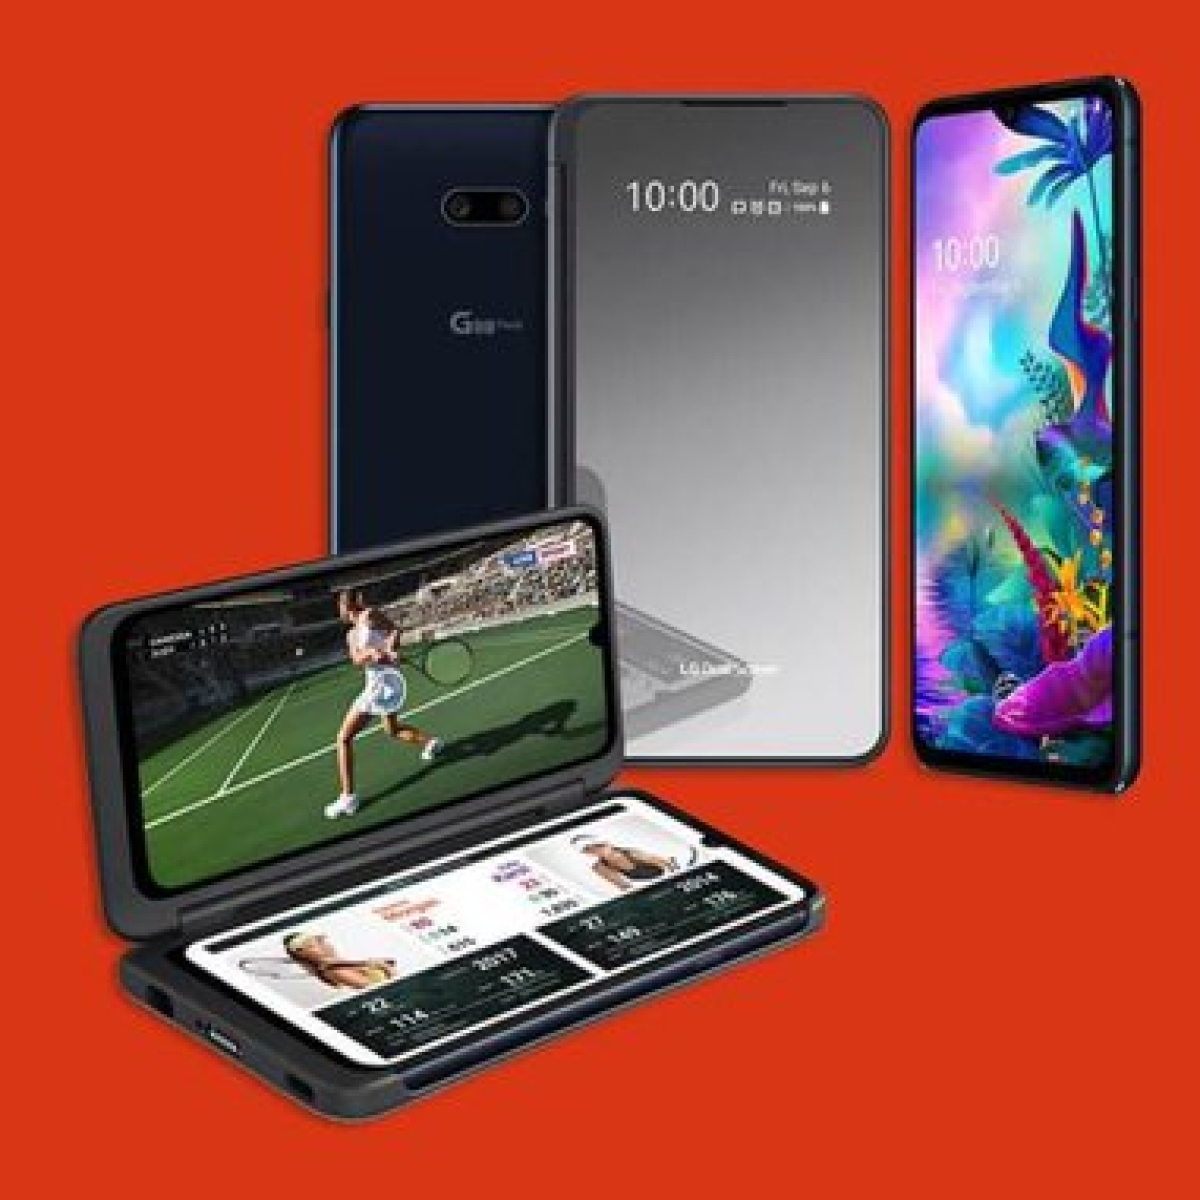 LG to unveil dual-screen 5G smartphone at MWC 2020